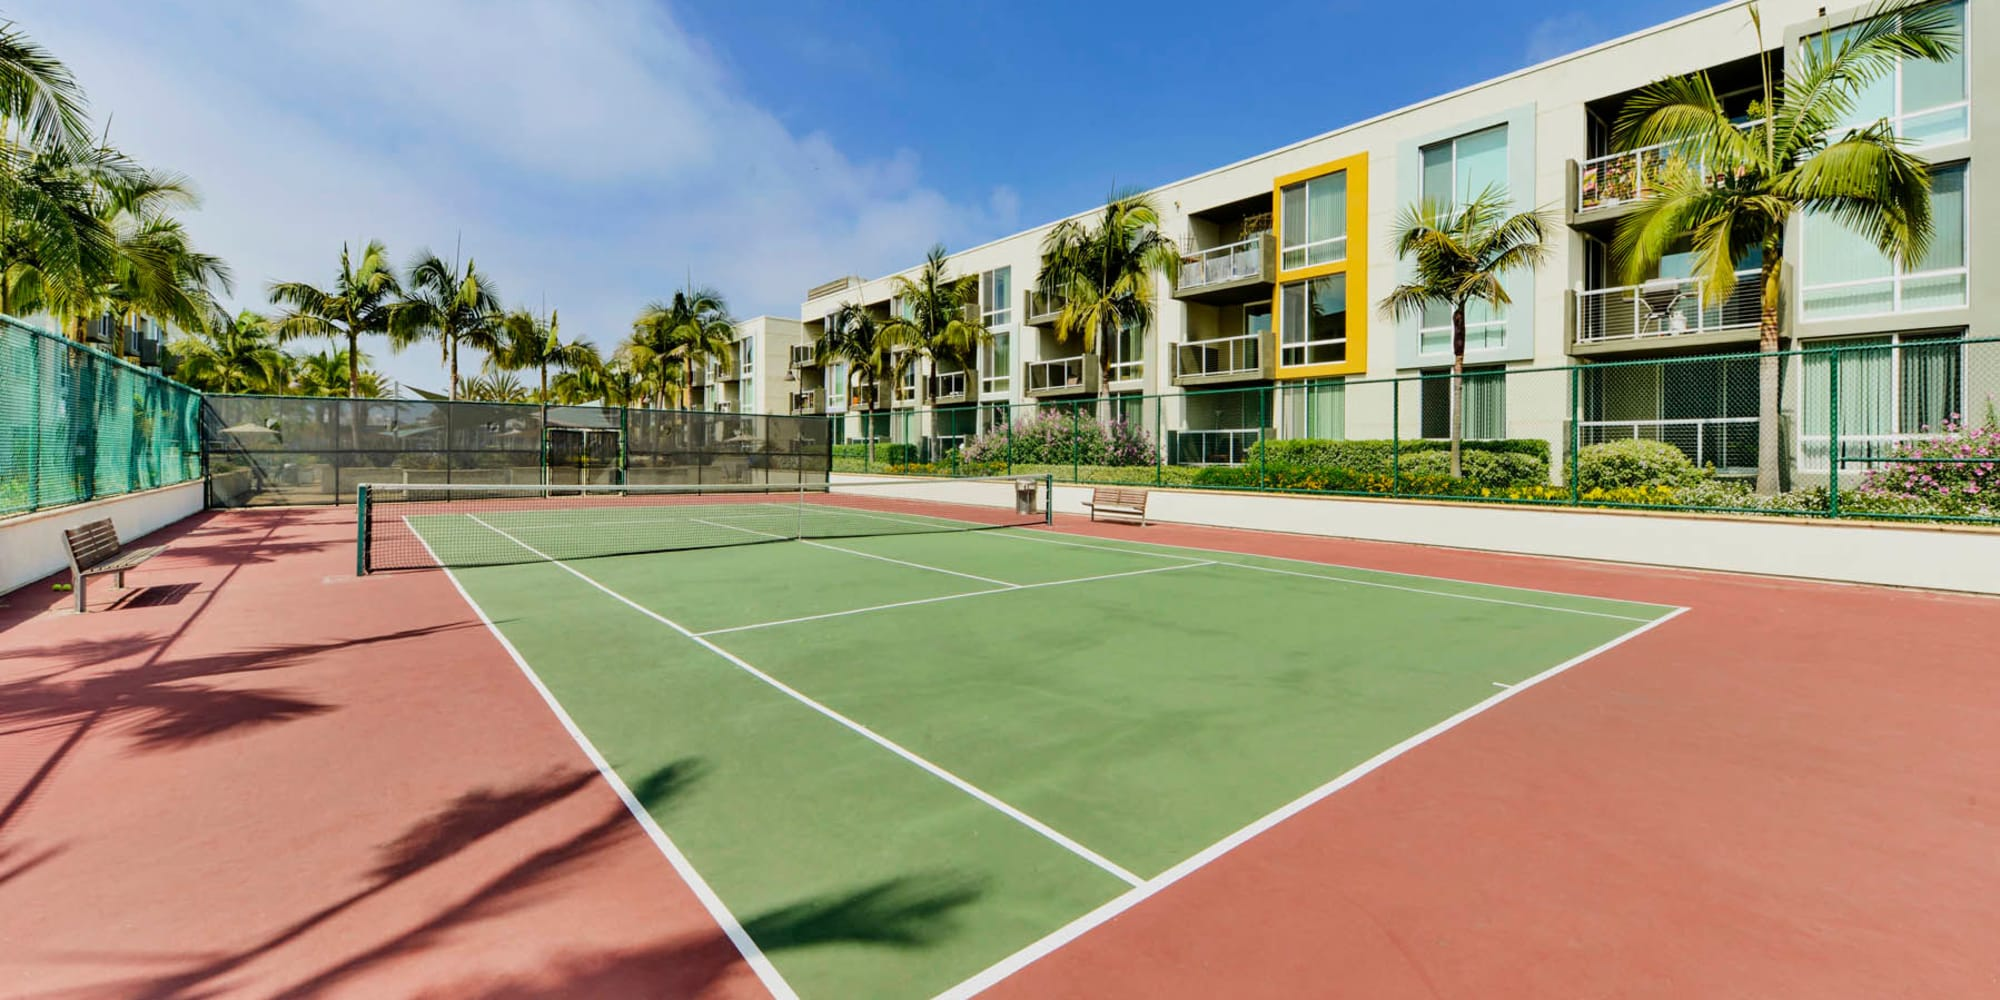 Well-maintained onsite tennis courts at Waters Edge at Marina Harbor in Marina Del Rey, California